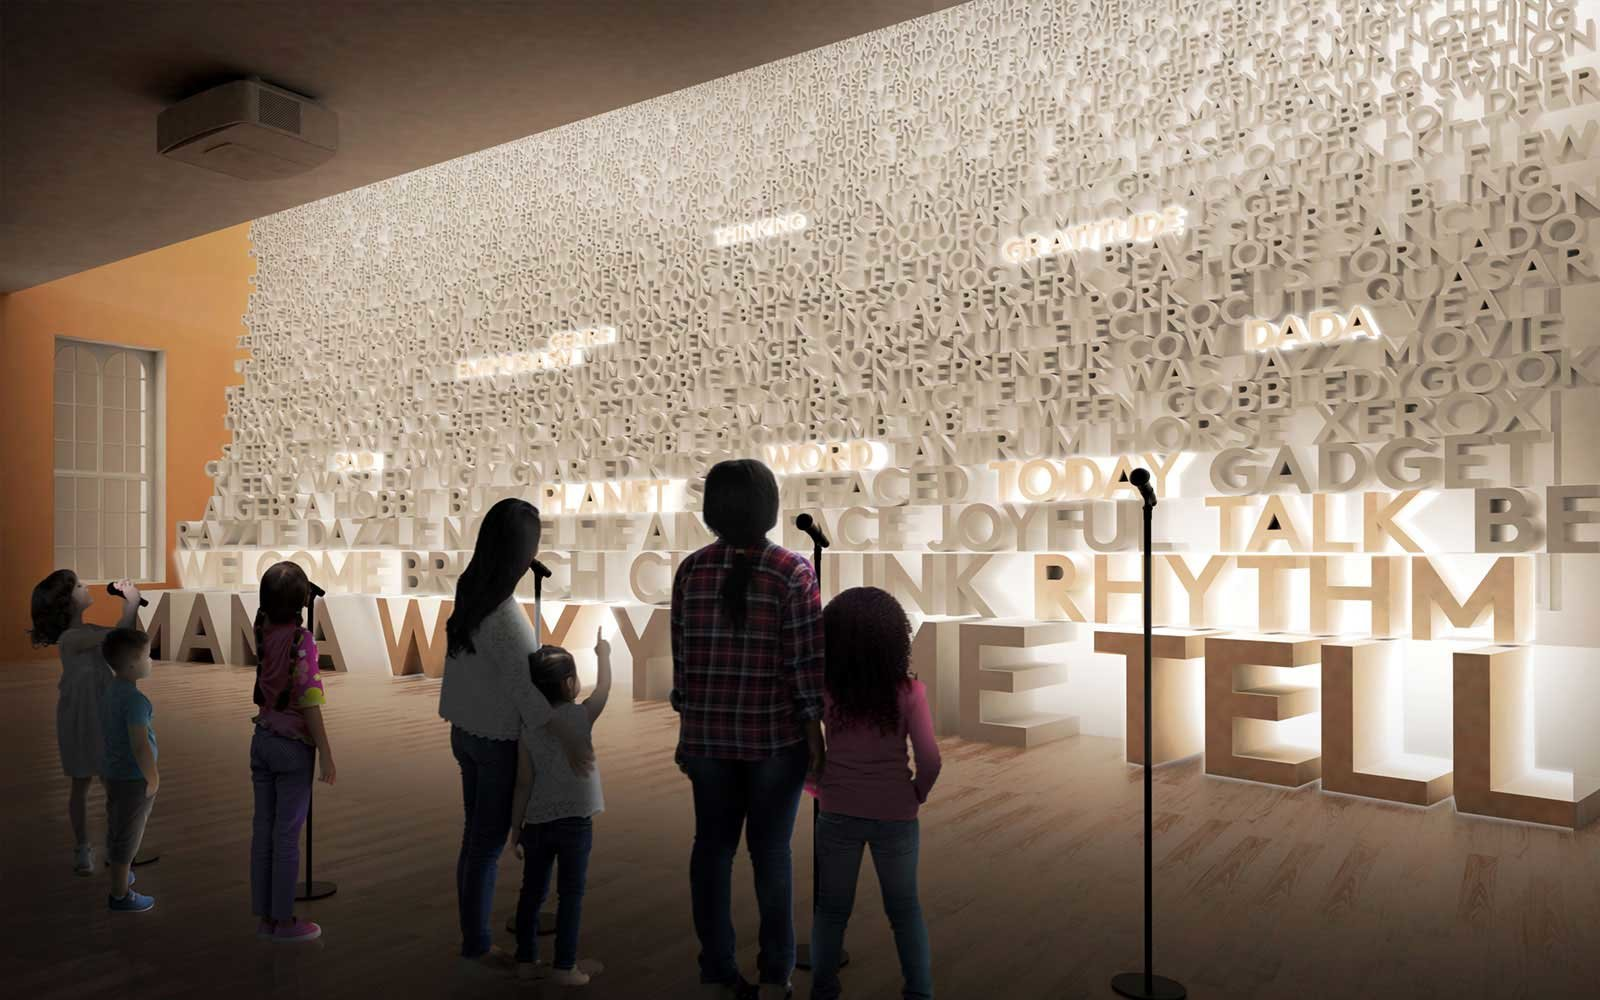 Planet Word Museum, a rendering of gallery exhibition indoors